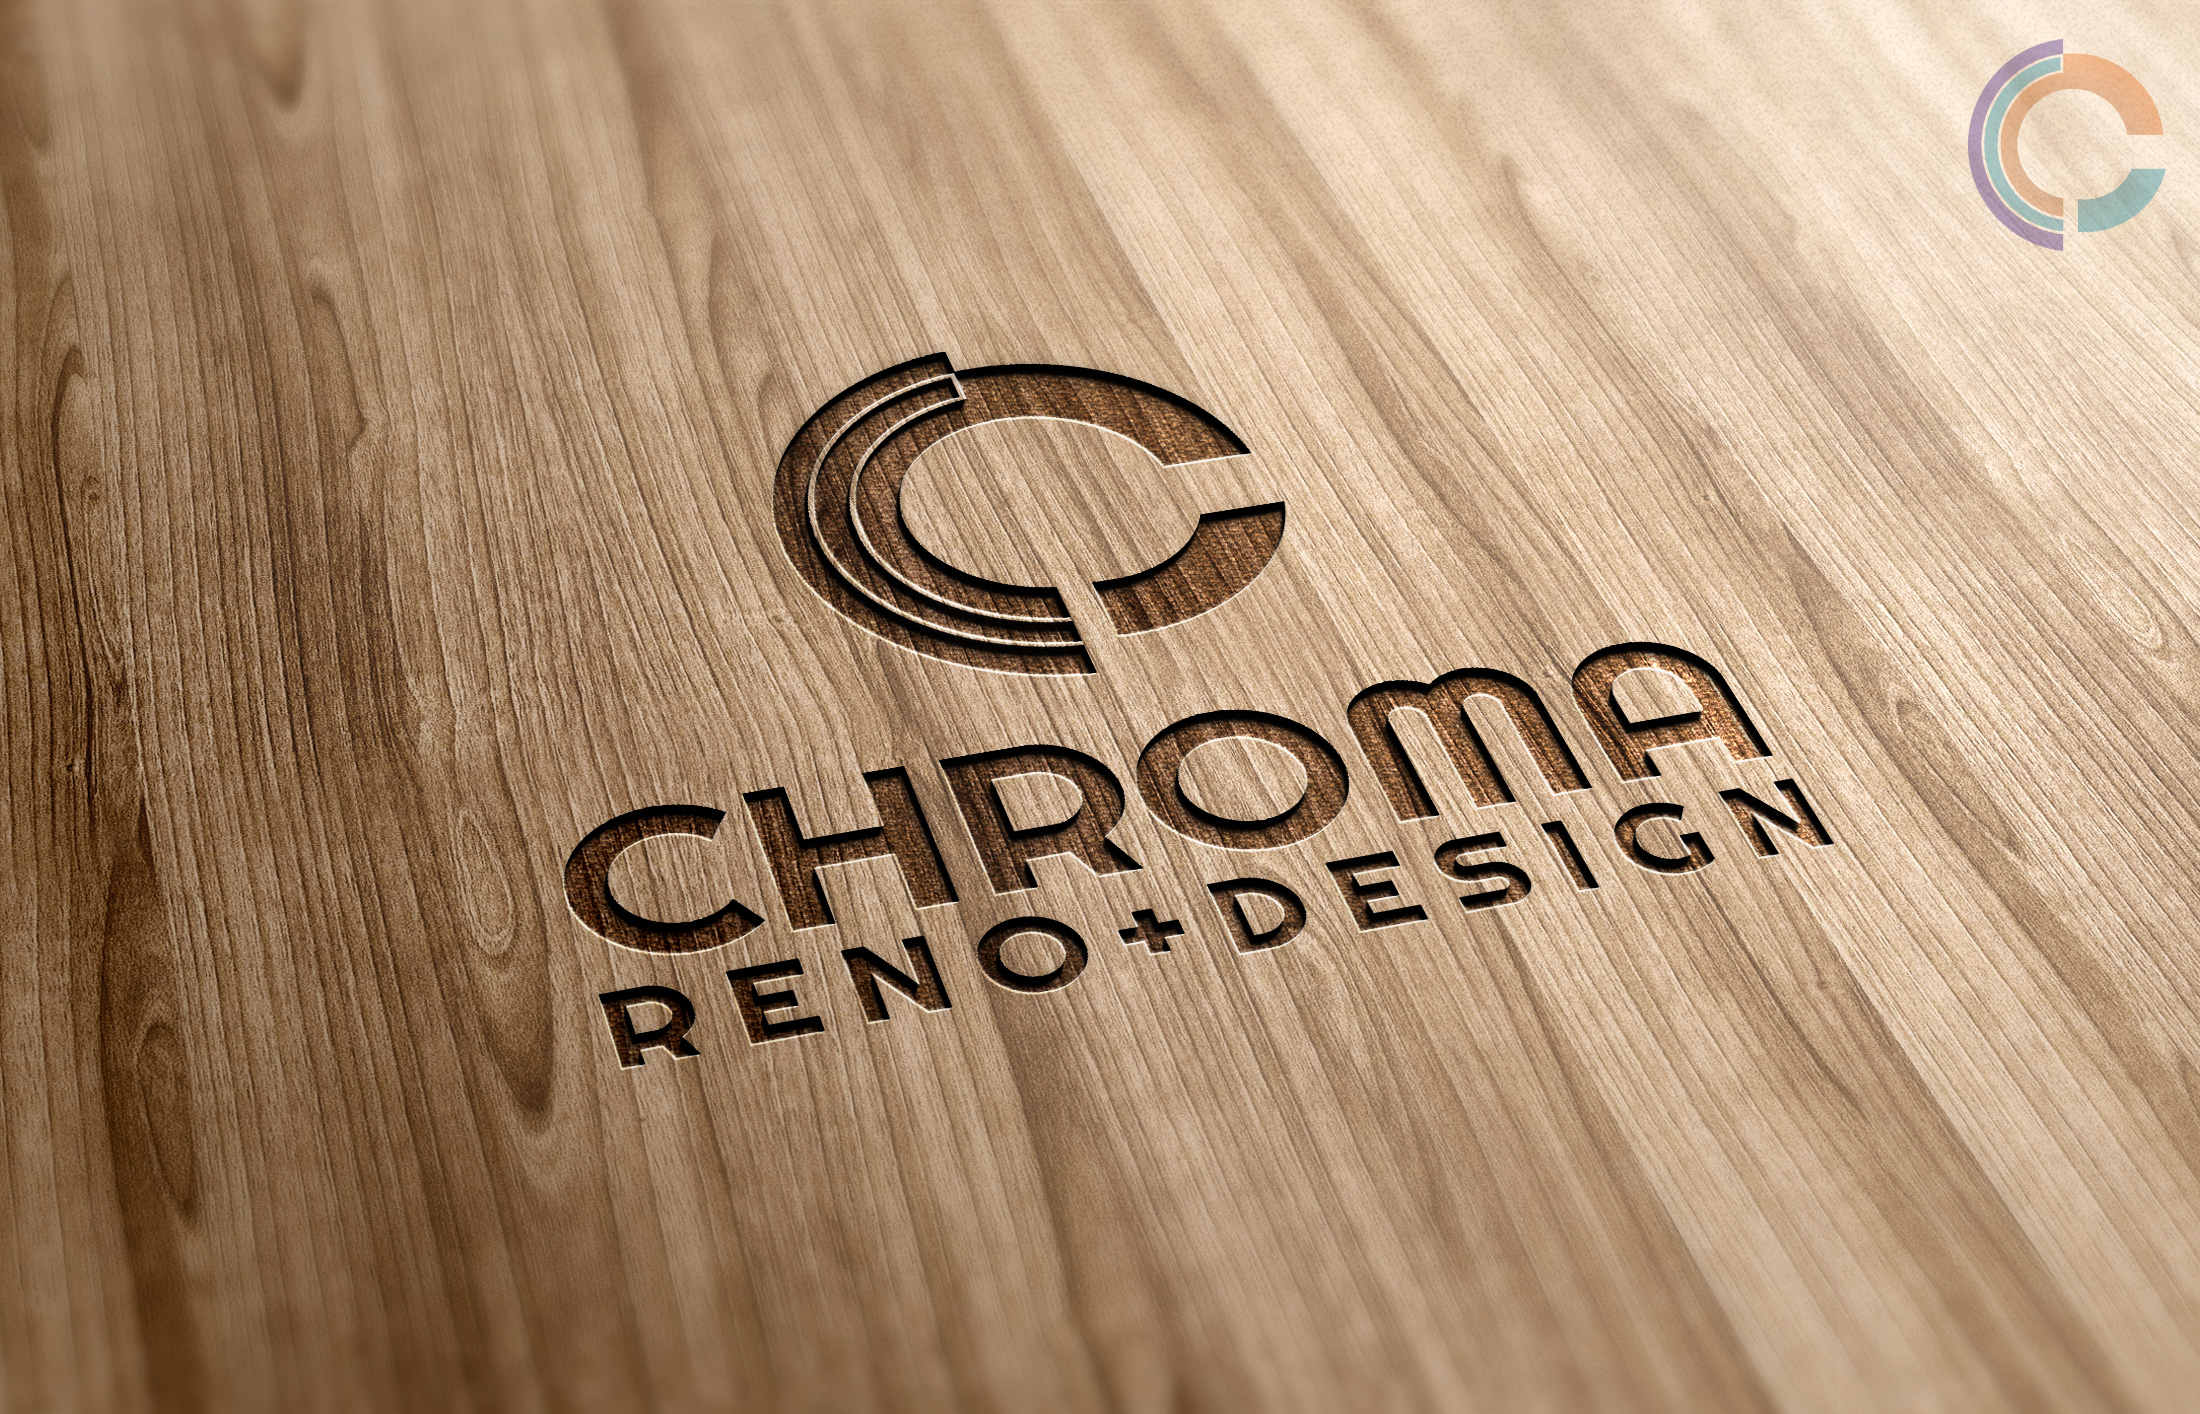 Logo Design by olii - Entry No. 120 in the Logo Design Contest Inspiring Logo Design for Chroma Reno+Design.